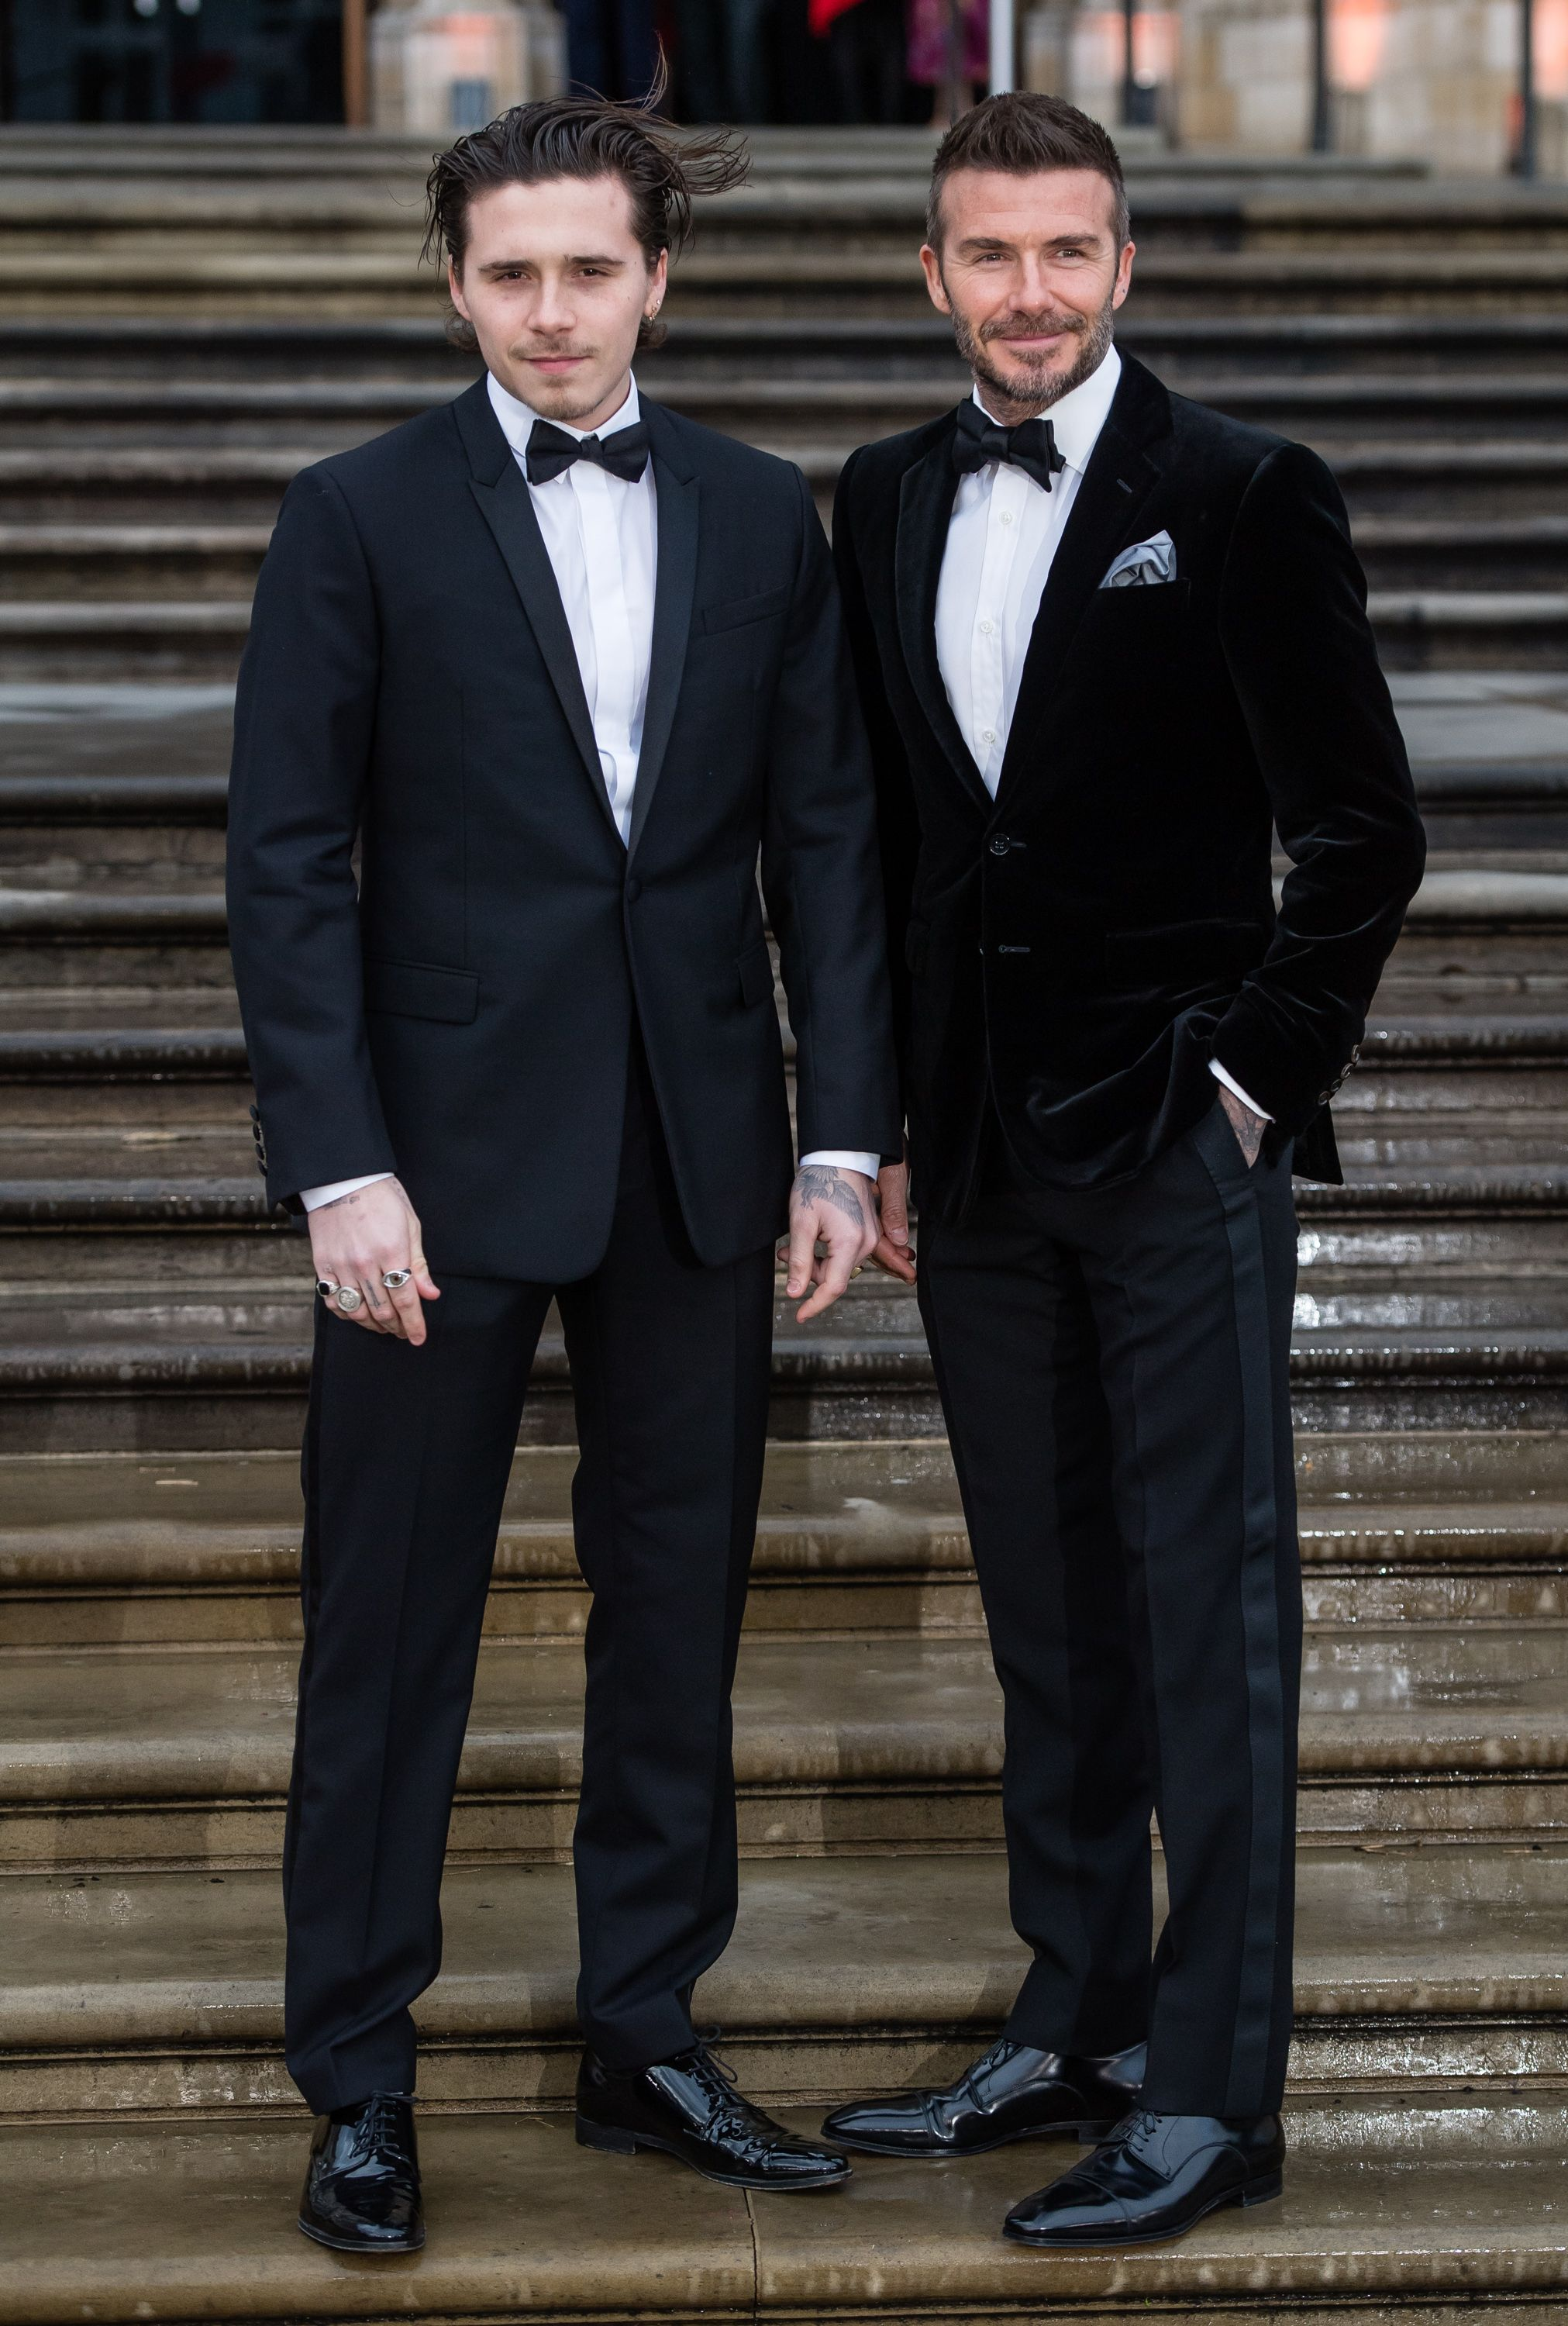 The Beckhams Just Pulled Off A Black Tie Masterclass. Here's How